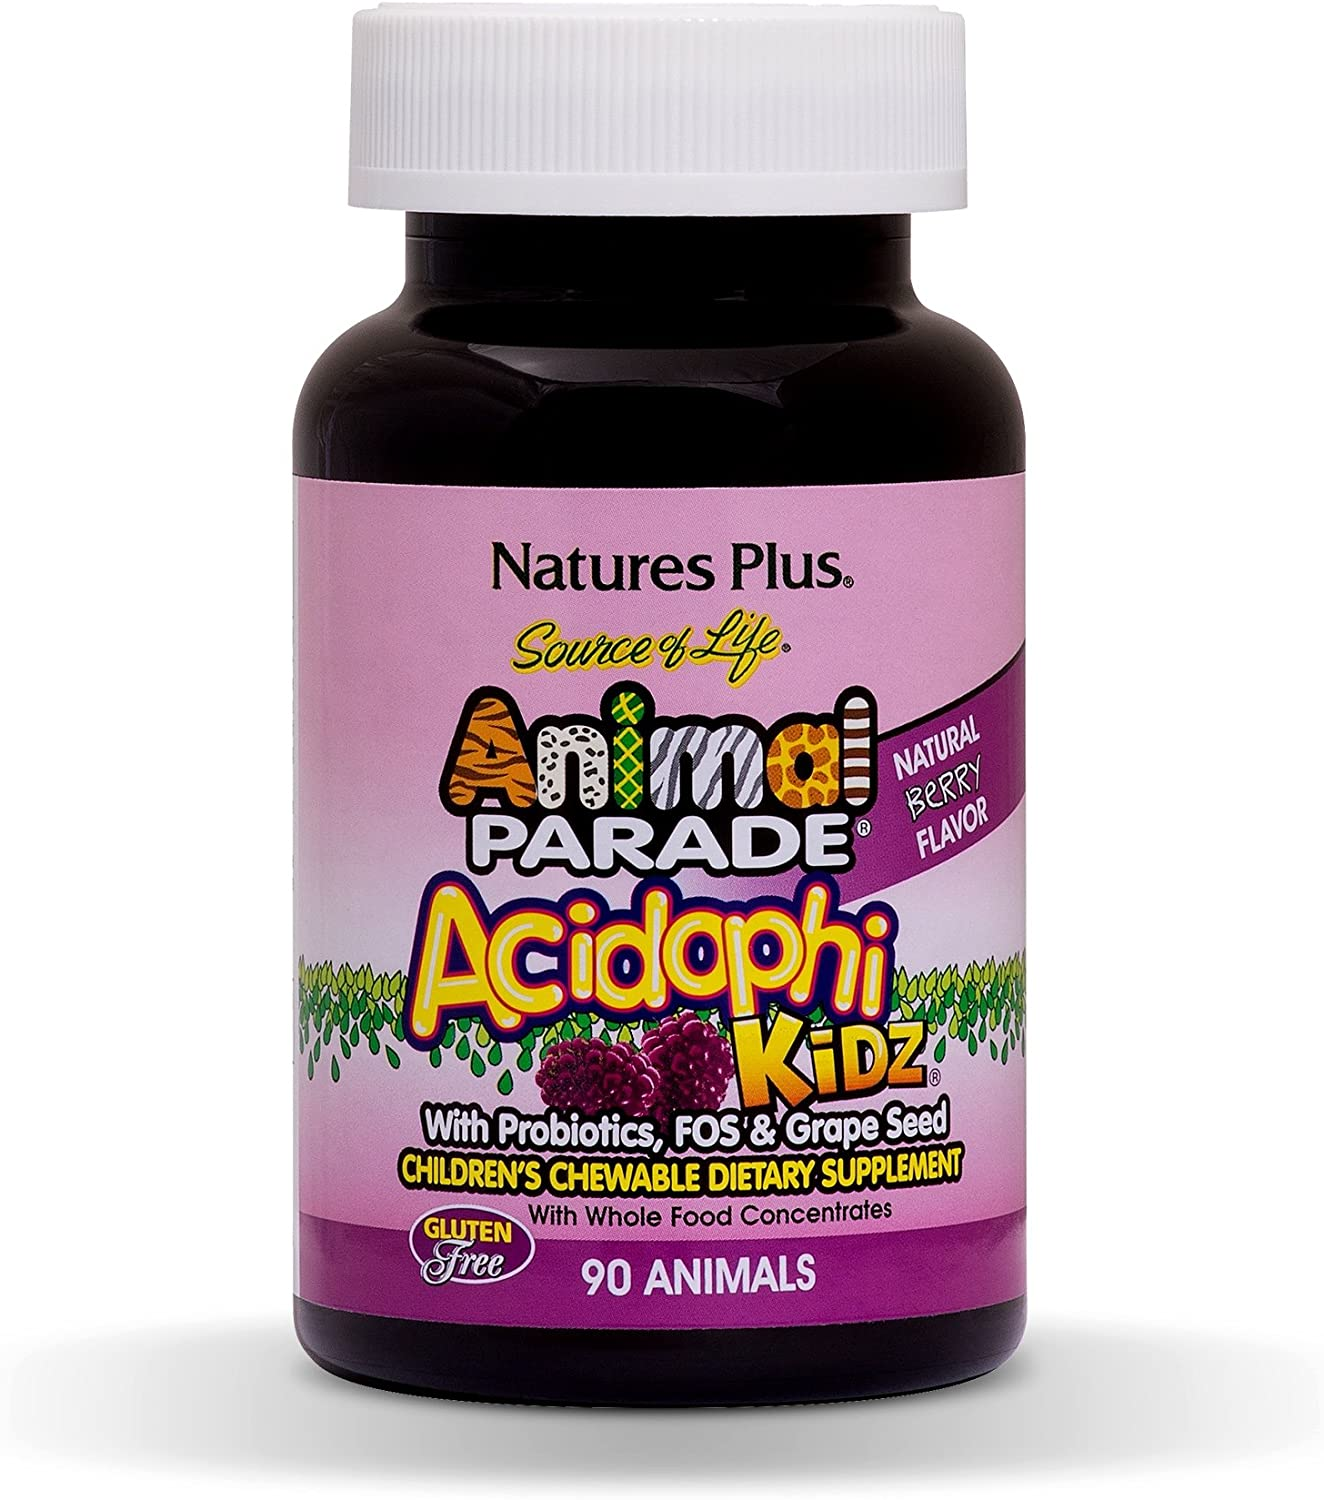 NaturesPlus Animal Parade Source of Life Acidophikidz Childrens Chewables - 90 Animal Shaped Tablets - Natural Berry Flavor - Vegetarian, Gluten-Free - 90 Servings